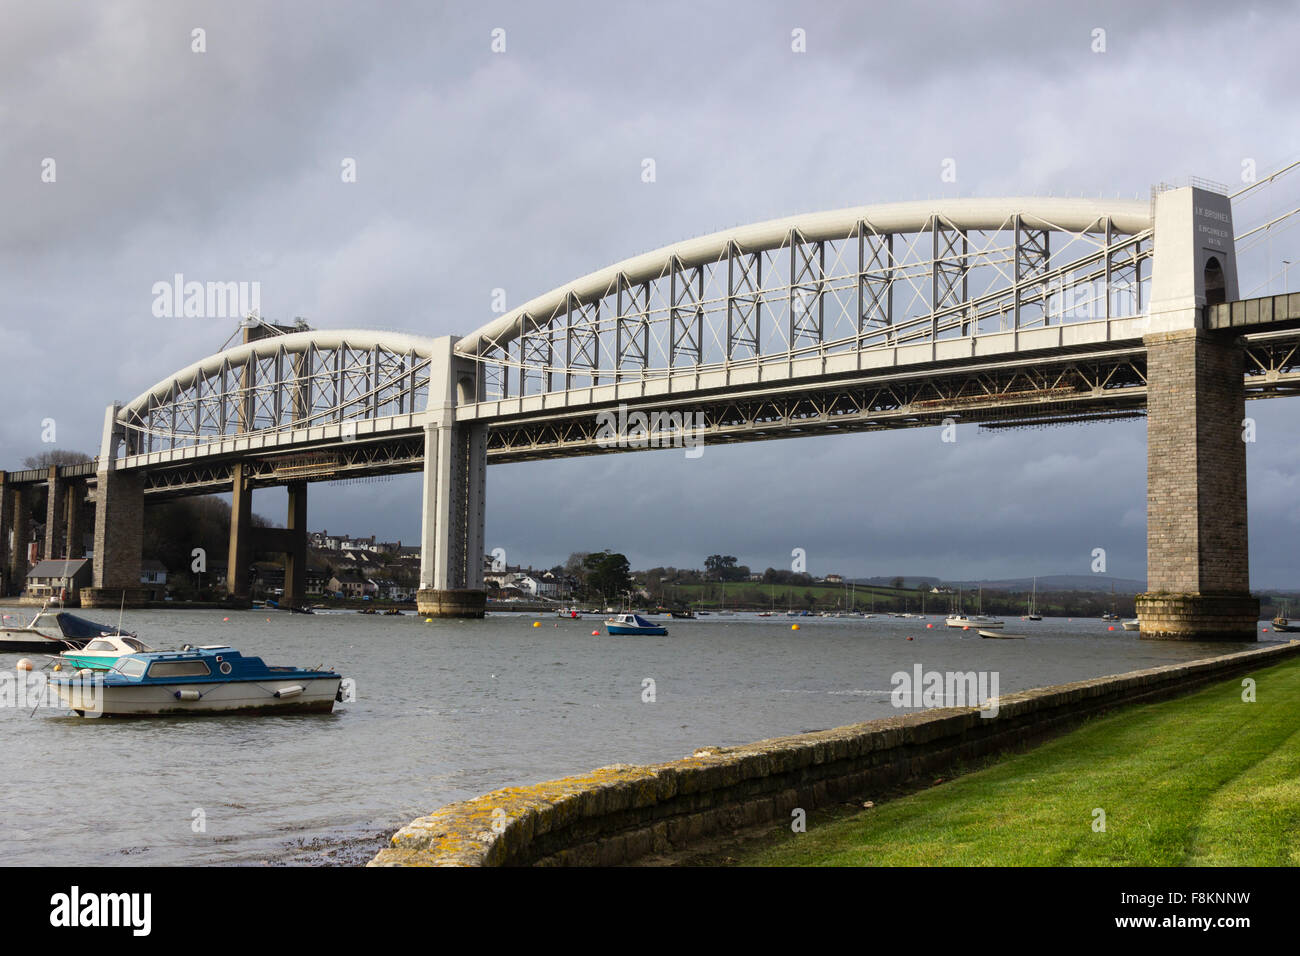 Isambard Kingdom Brunel designed Royal Albert bridge carrying the Cornish main railway line across the River Tamar, Stock Photo